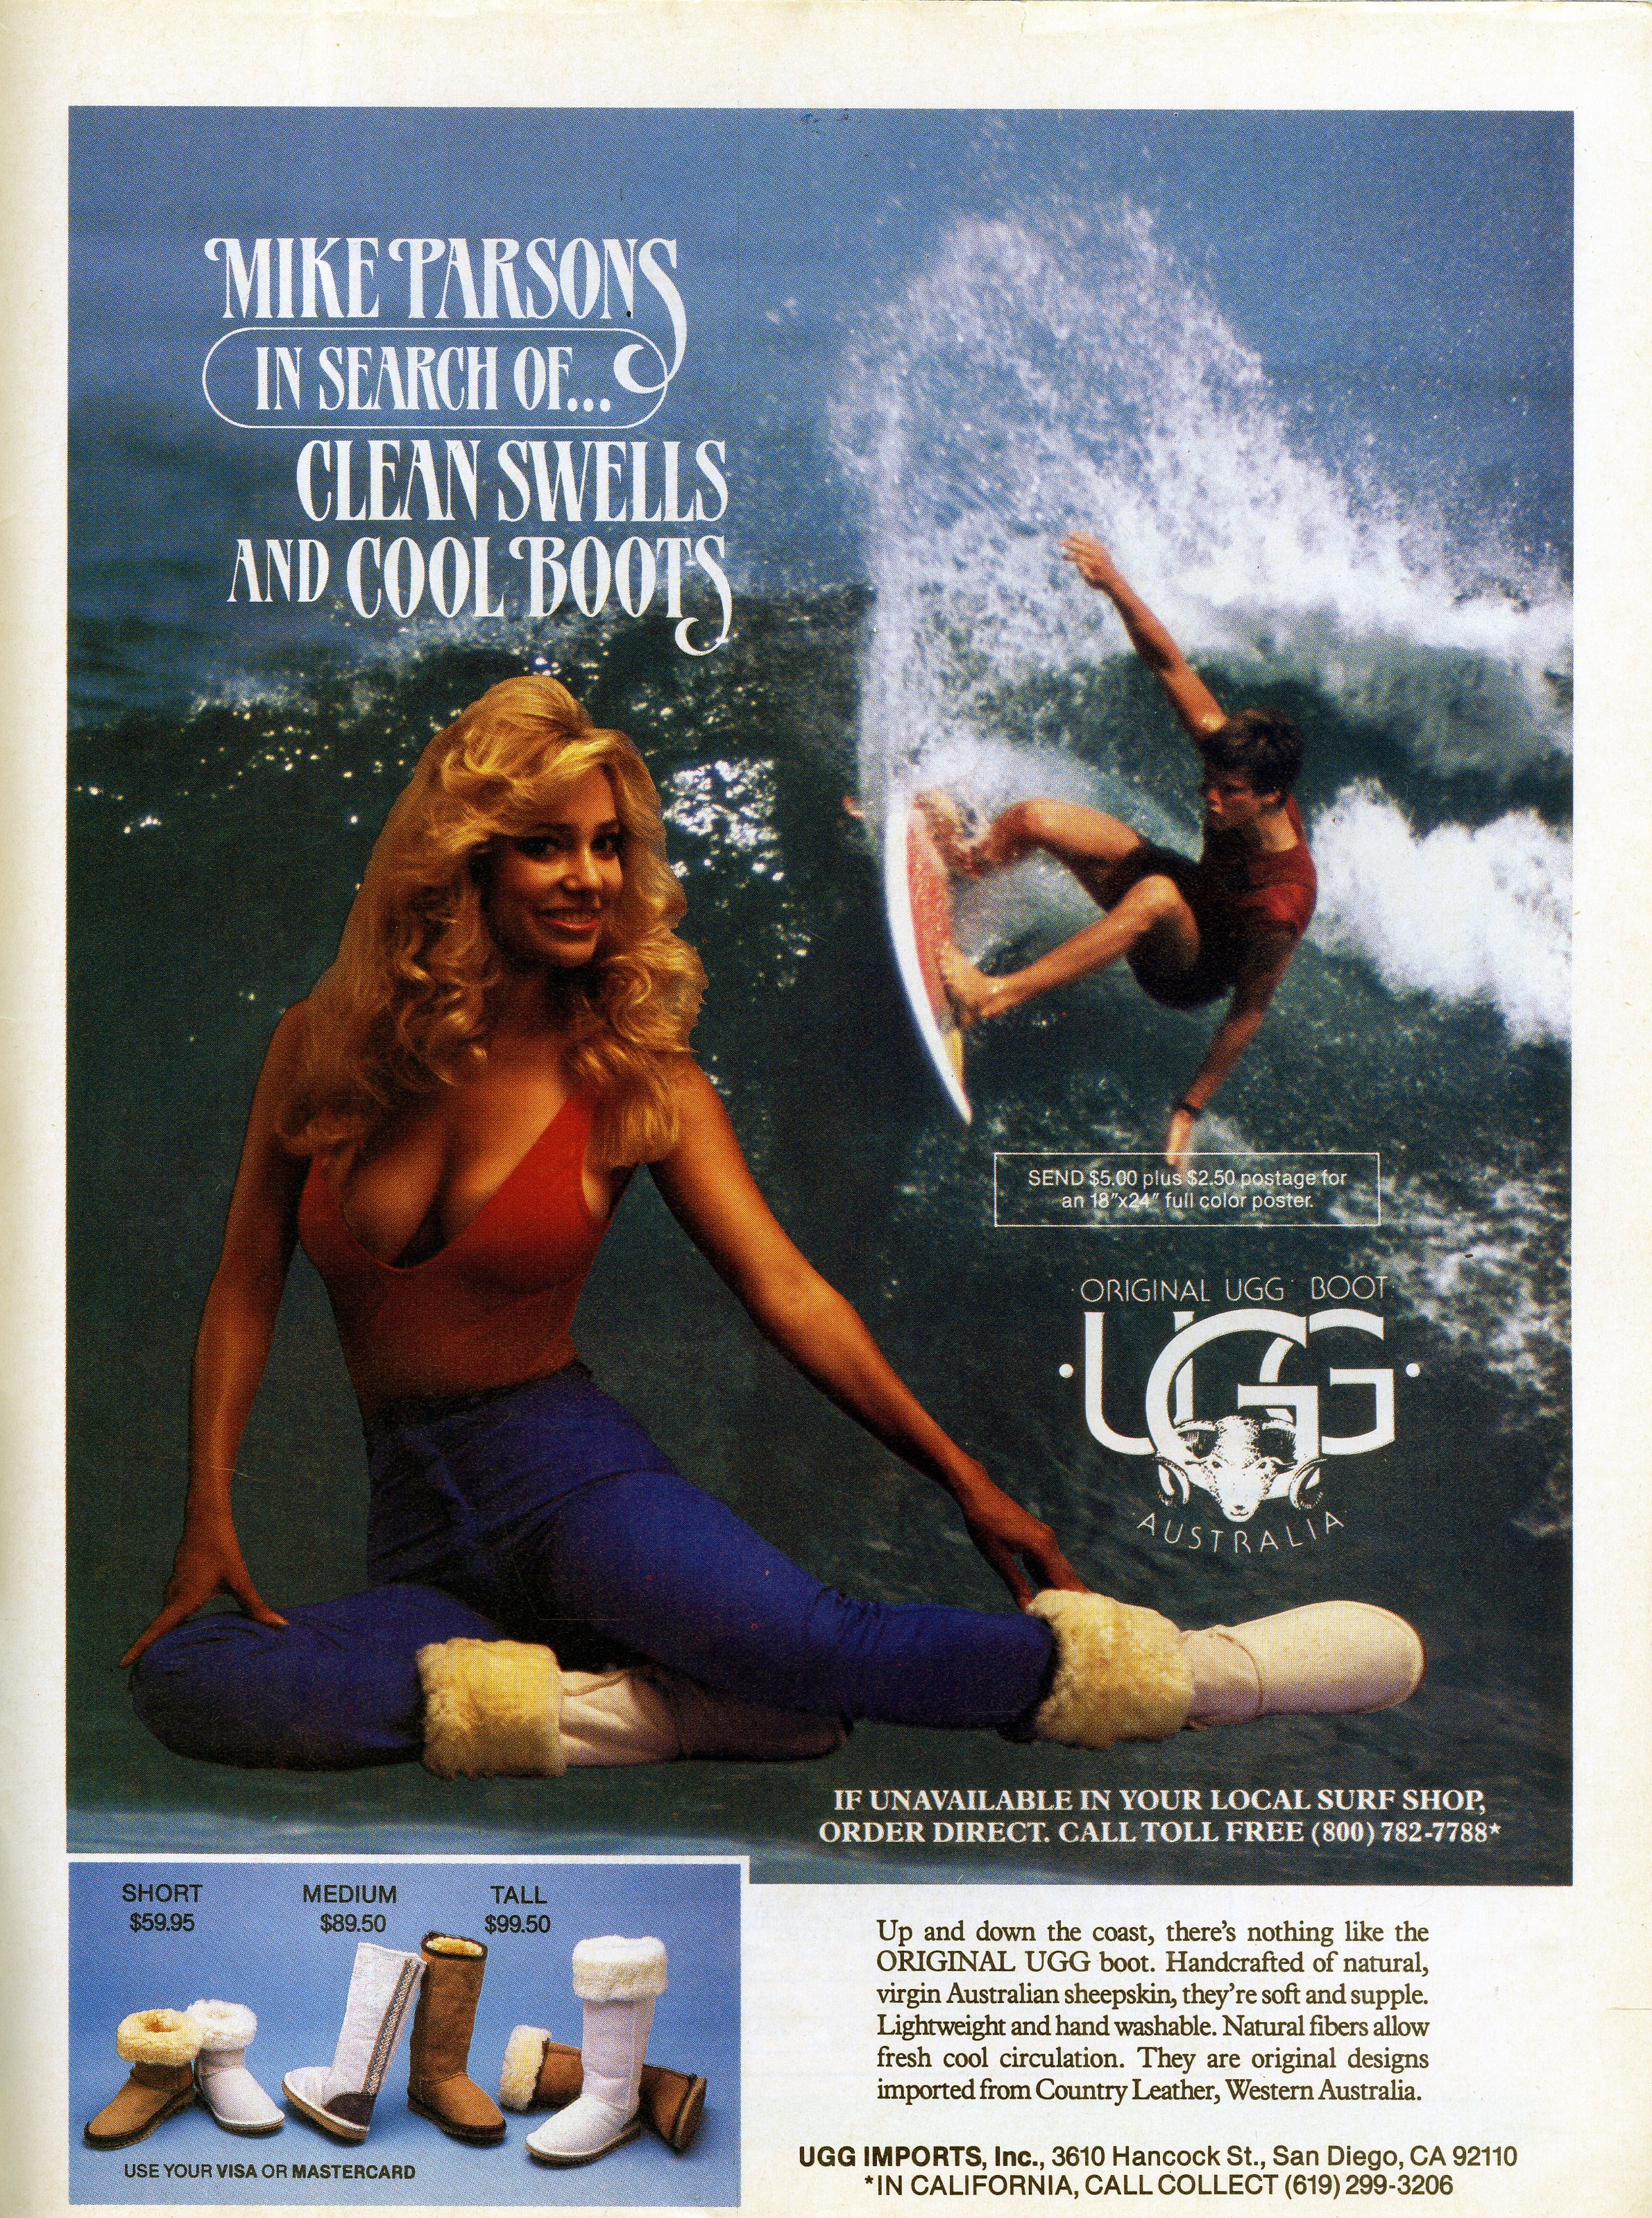 Vintage Ugg Australia Ad With Mike Parsons Sagas Of Shred